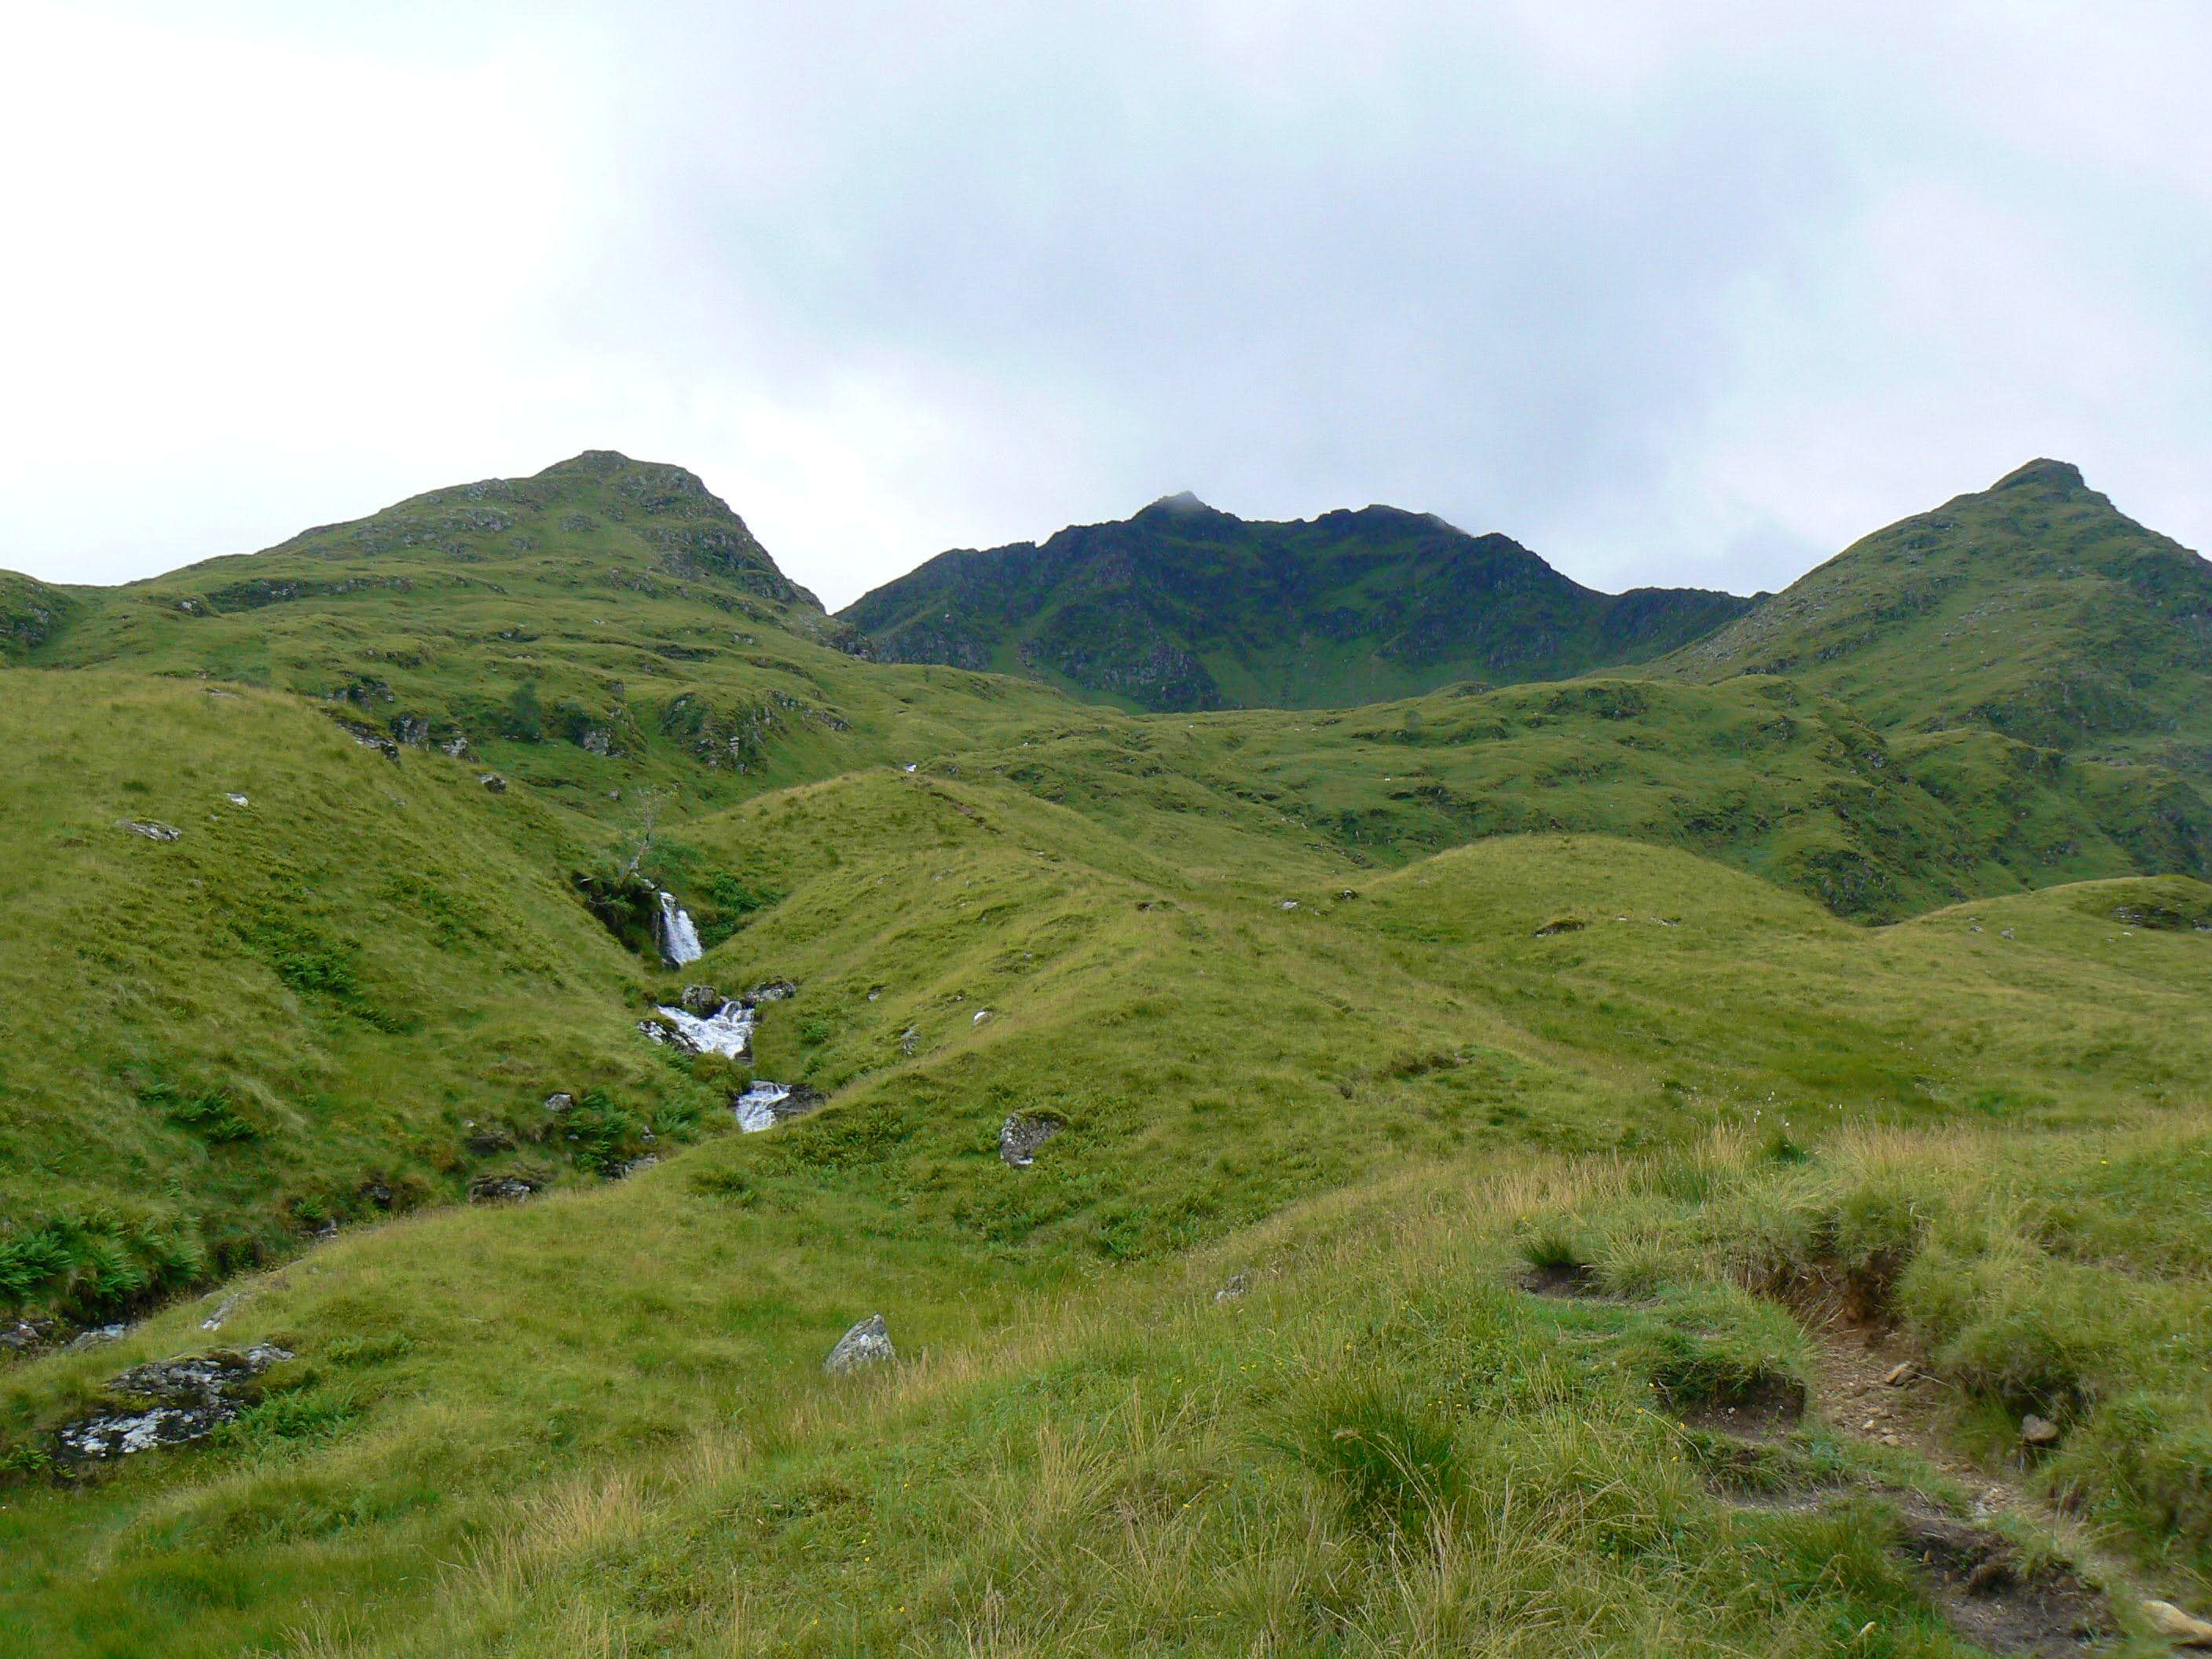 Via Glen Cononish (Gully to ridge of Stob Garbh)